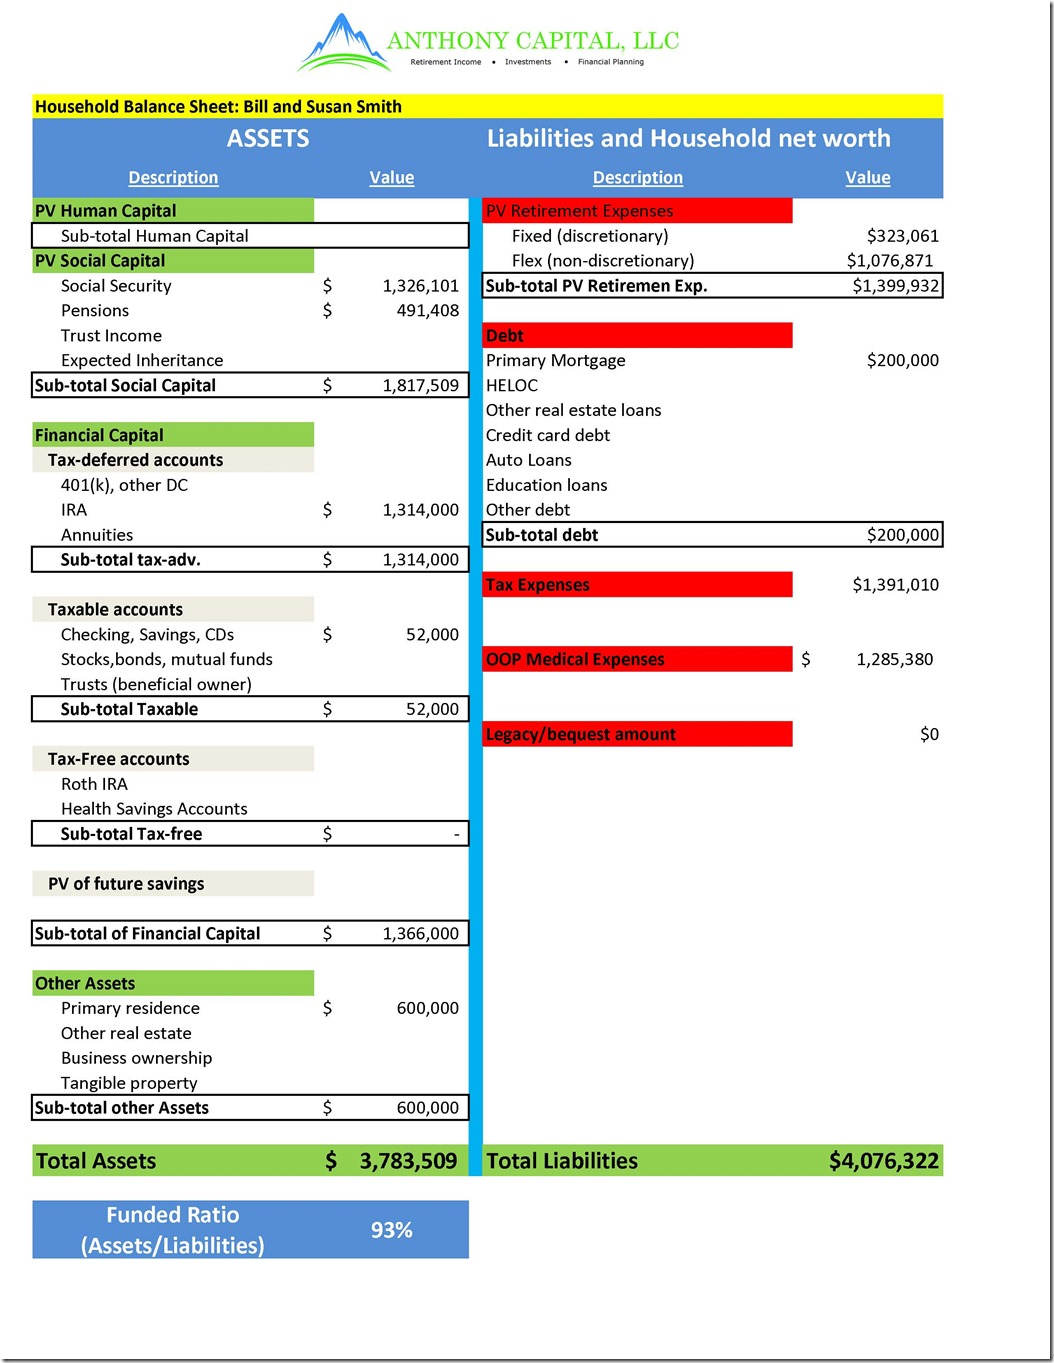 Itemized Houshold Balance Sheet Bill and Susan